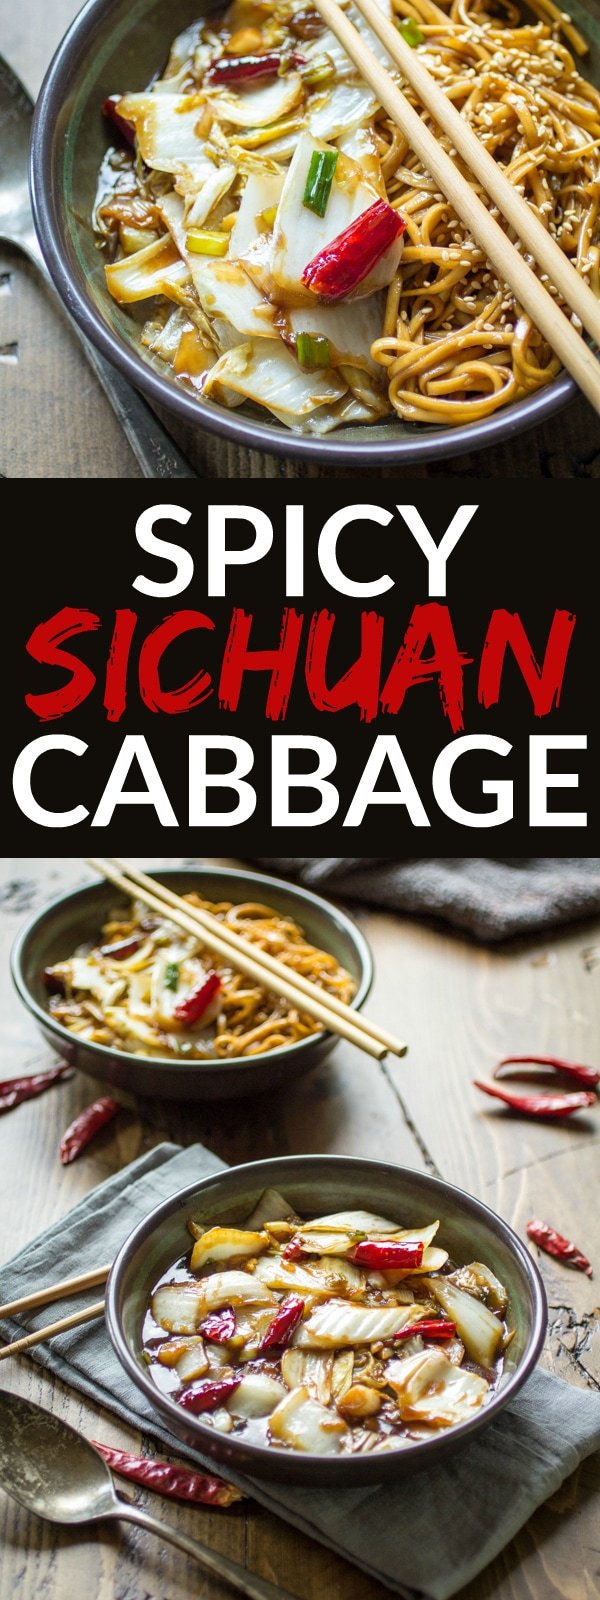 Spicy Sichuan Cabbage The Wanderlust Kitchen